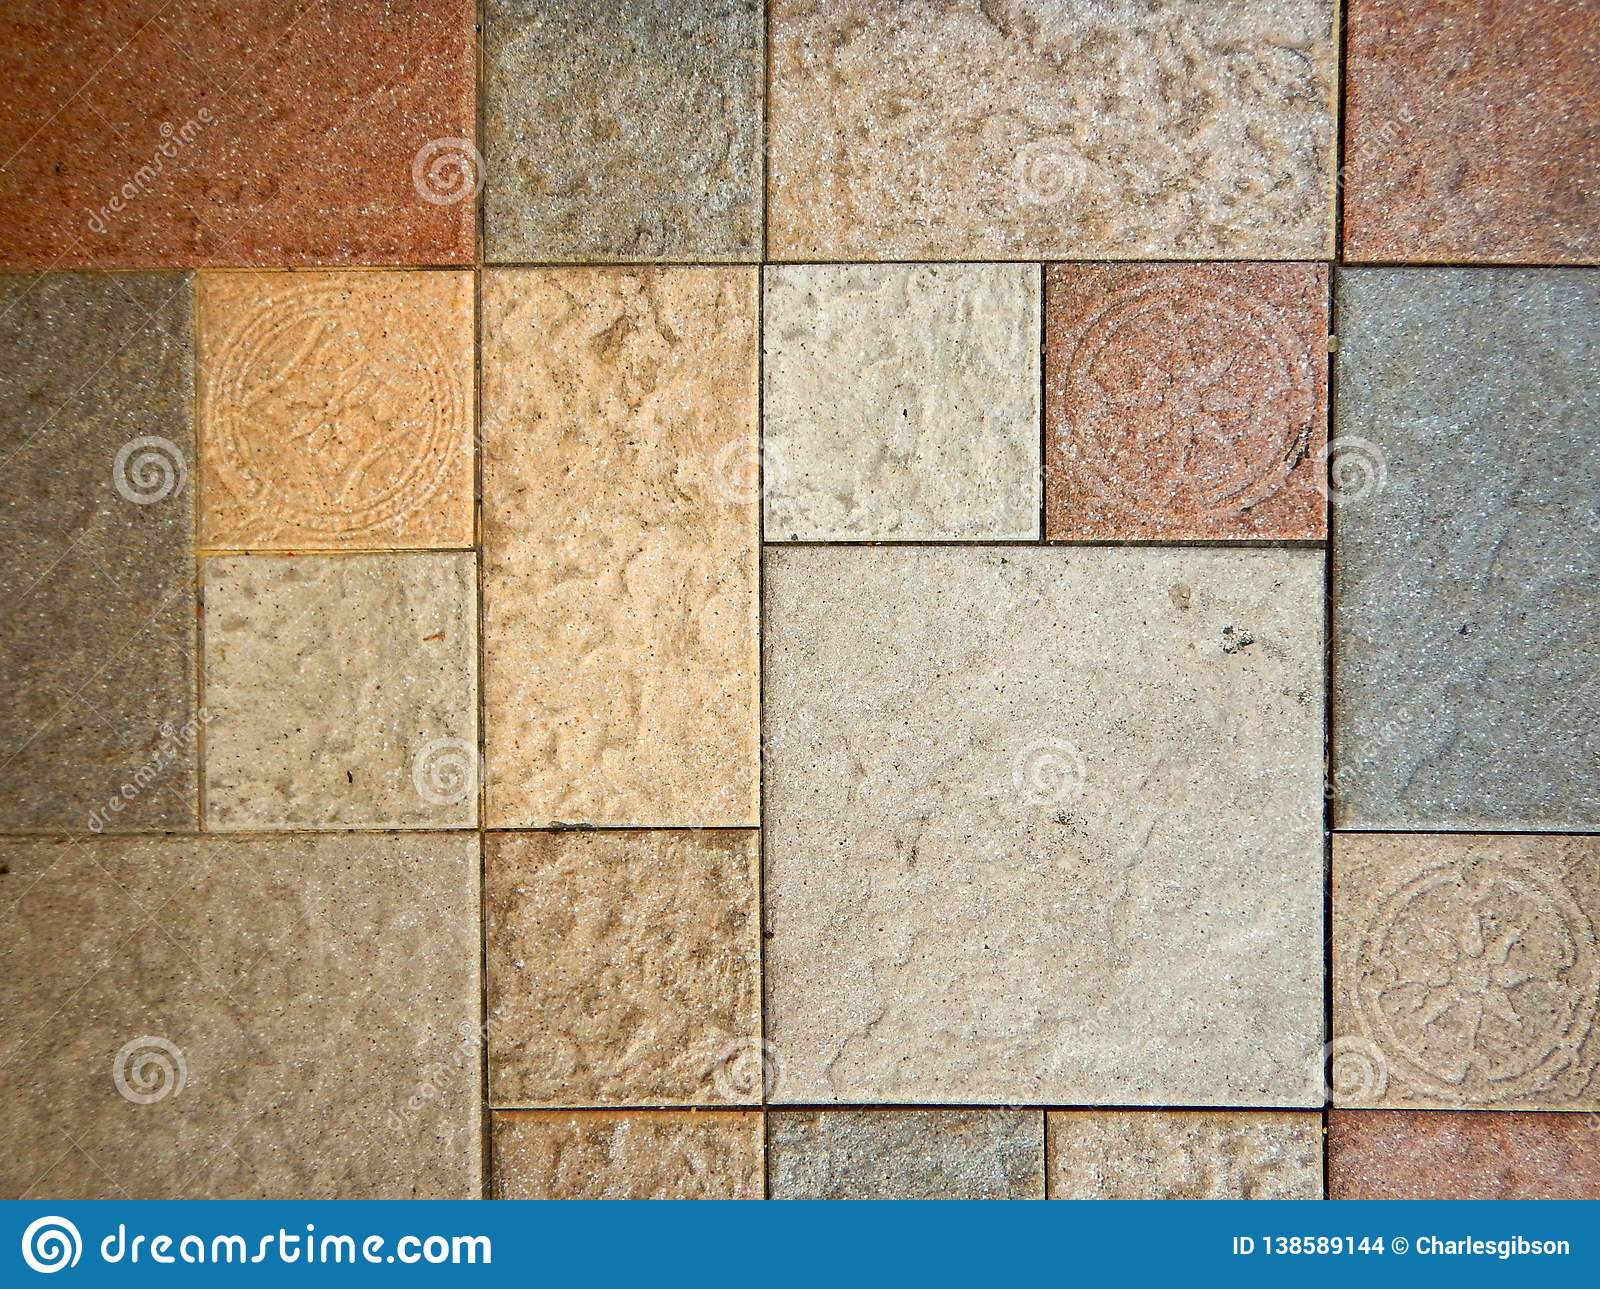 Coloured floor tiles stock photo  Image of colours, shop